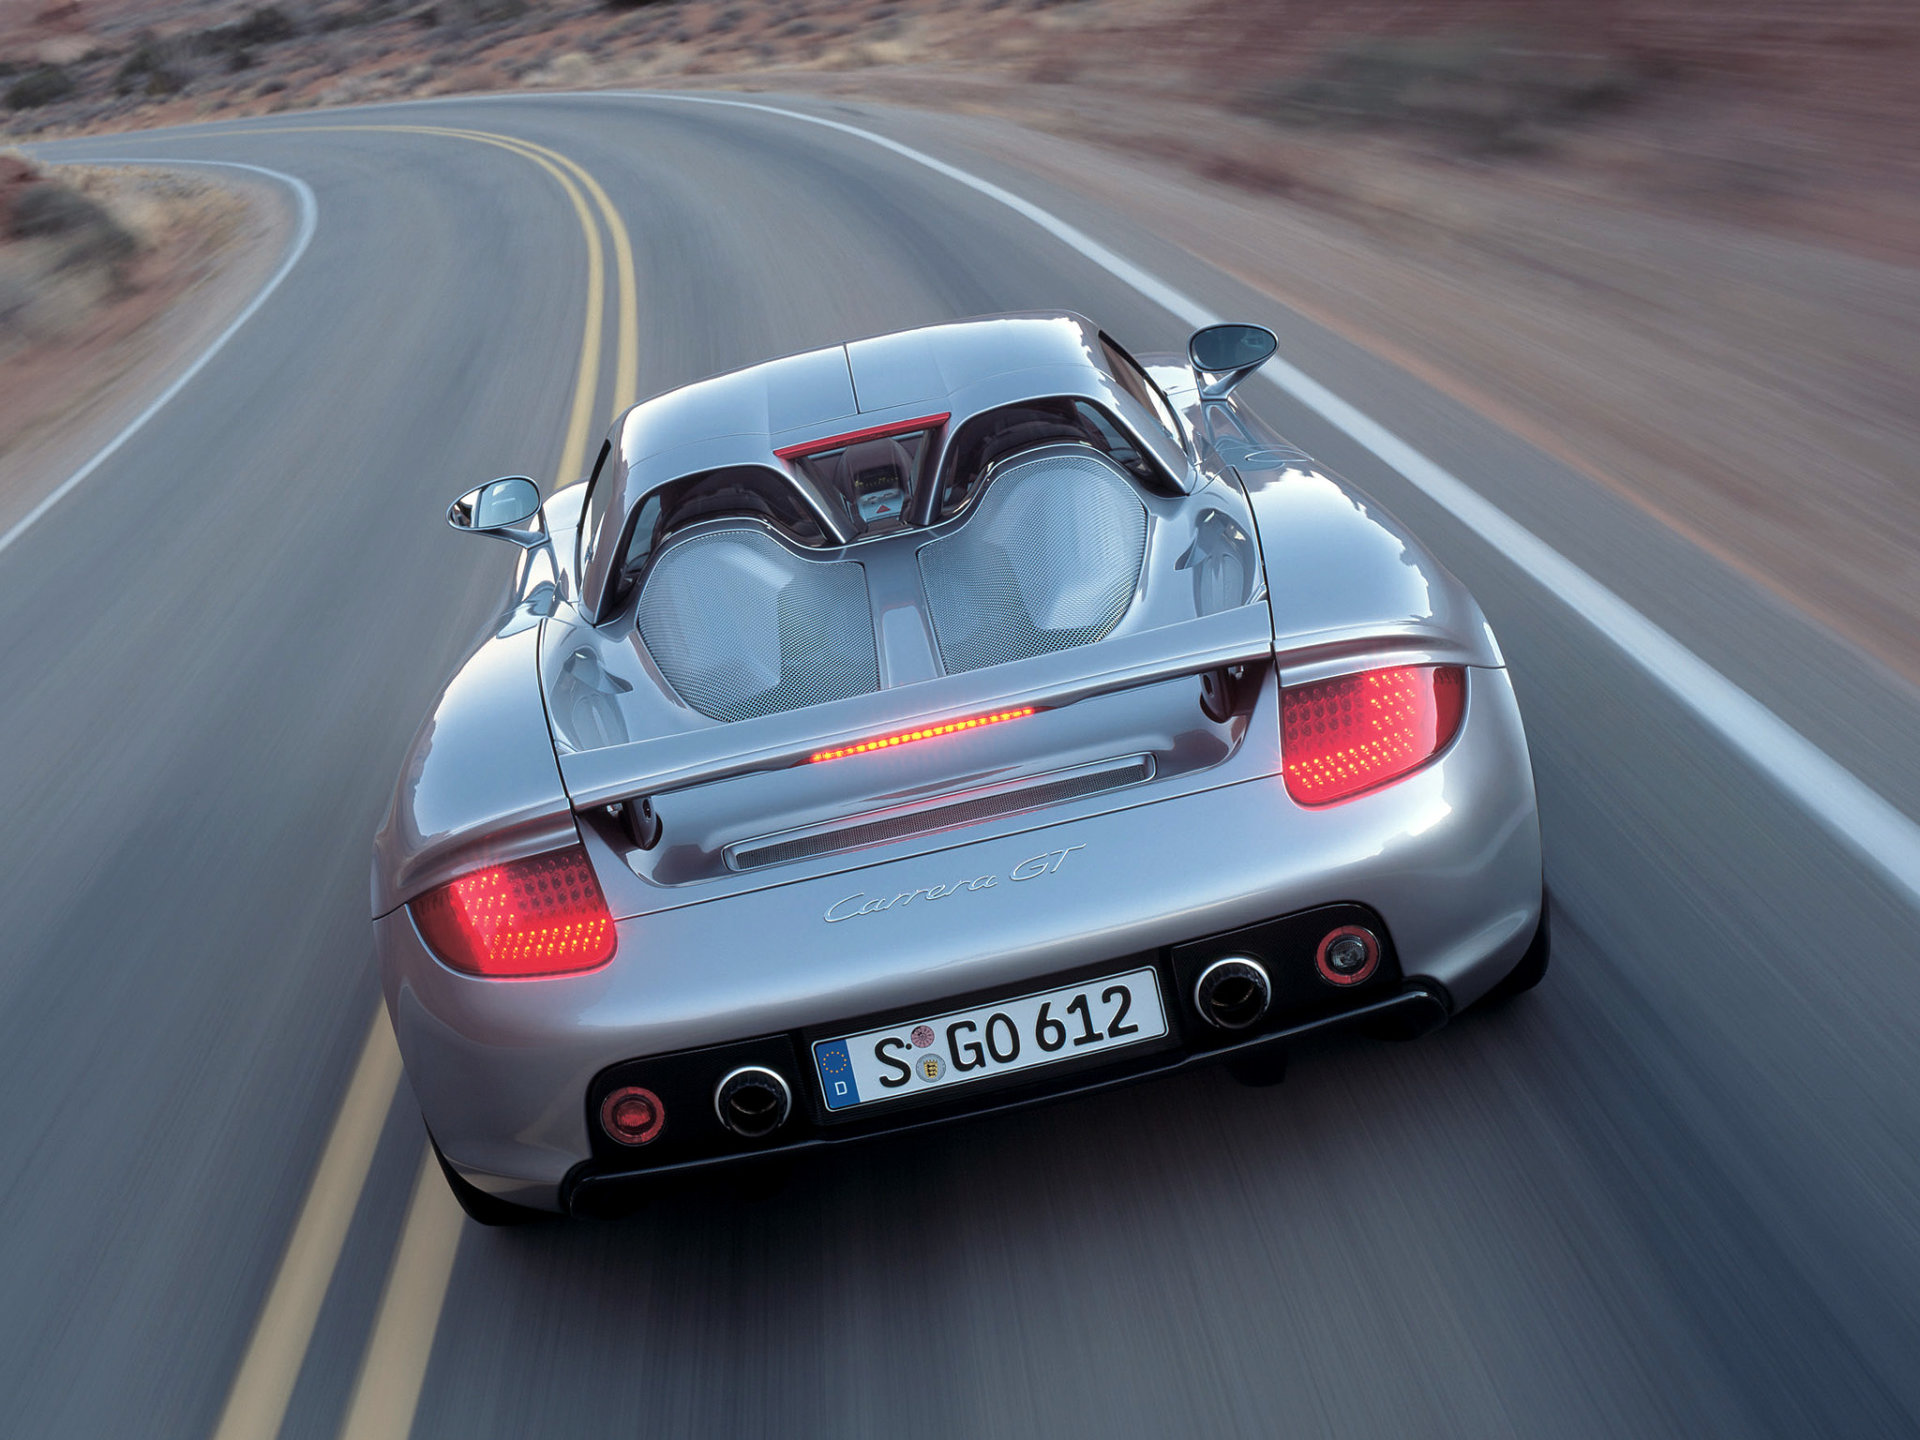 Real Art on Wheels | 2004 Porsche Carrera GT